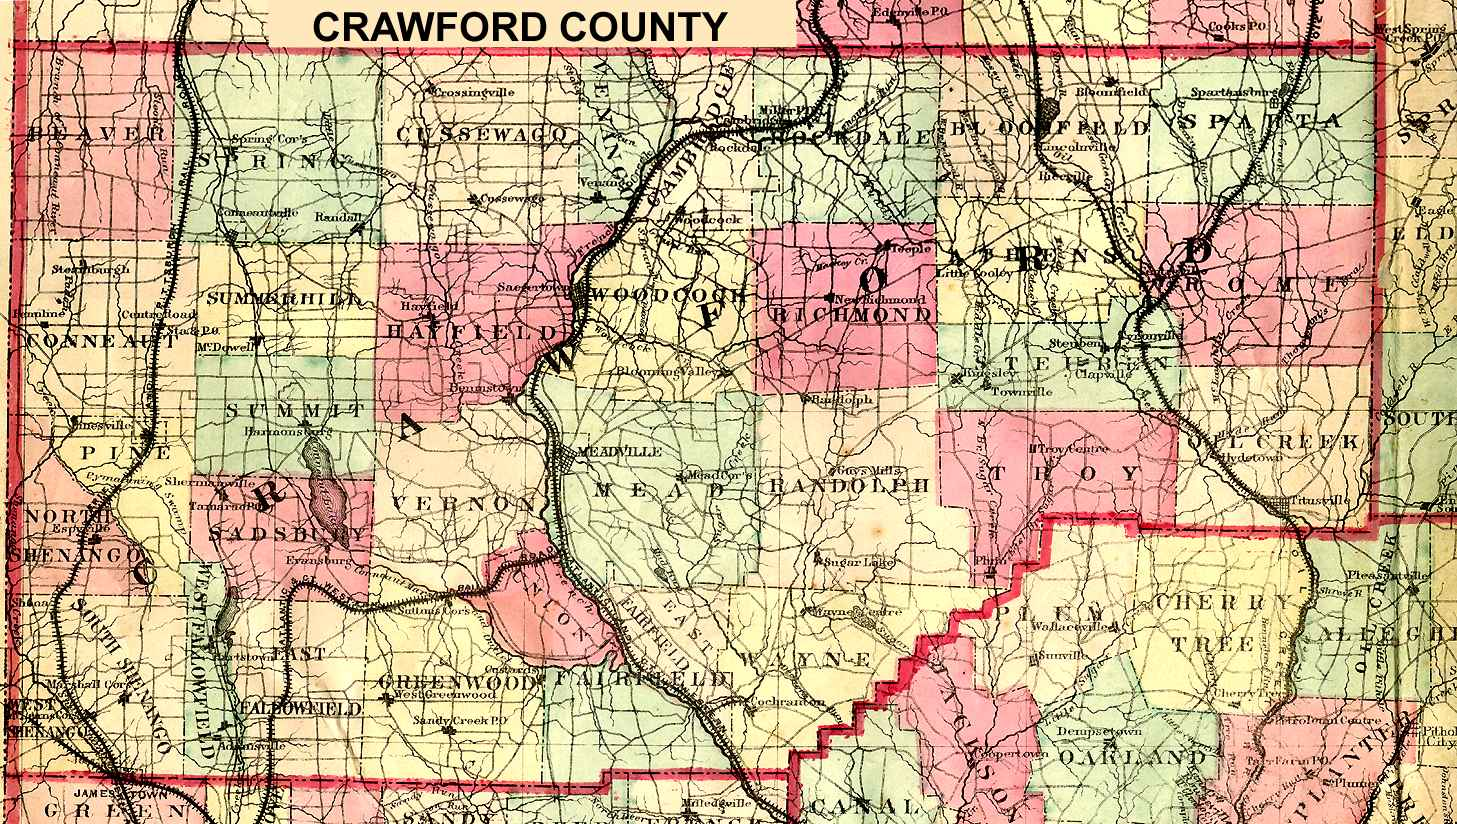 delaware county pa map of townships with Crawford County Map on 19709 also PA radon map together with File Map of Delaware County Ohio With Municipal and Township Labels also File Map of Indiana County Pennsylvania With Municipal and Township Labels furthermore File Map of Bucks County Pennsylvania School Districts.